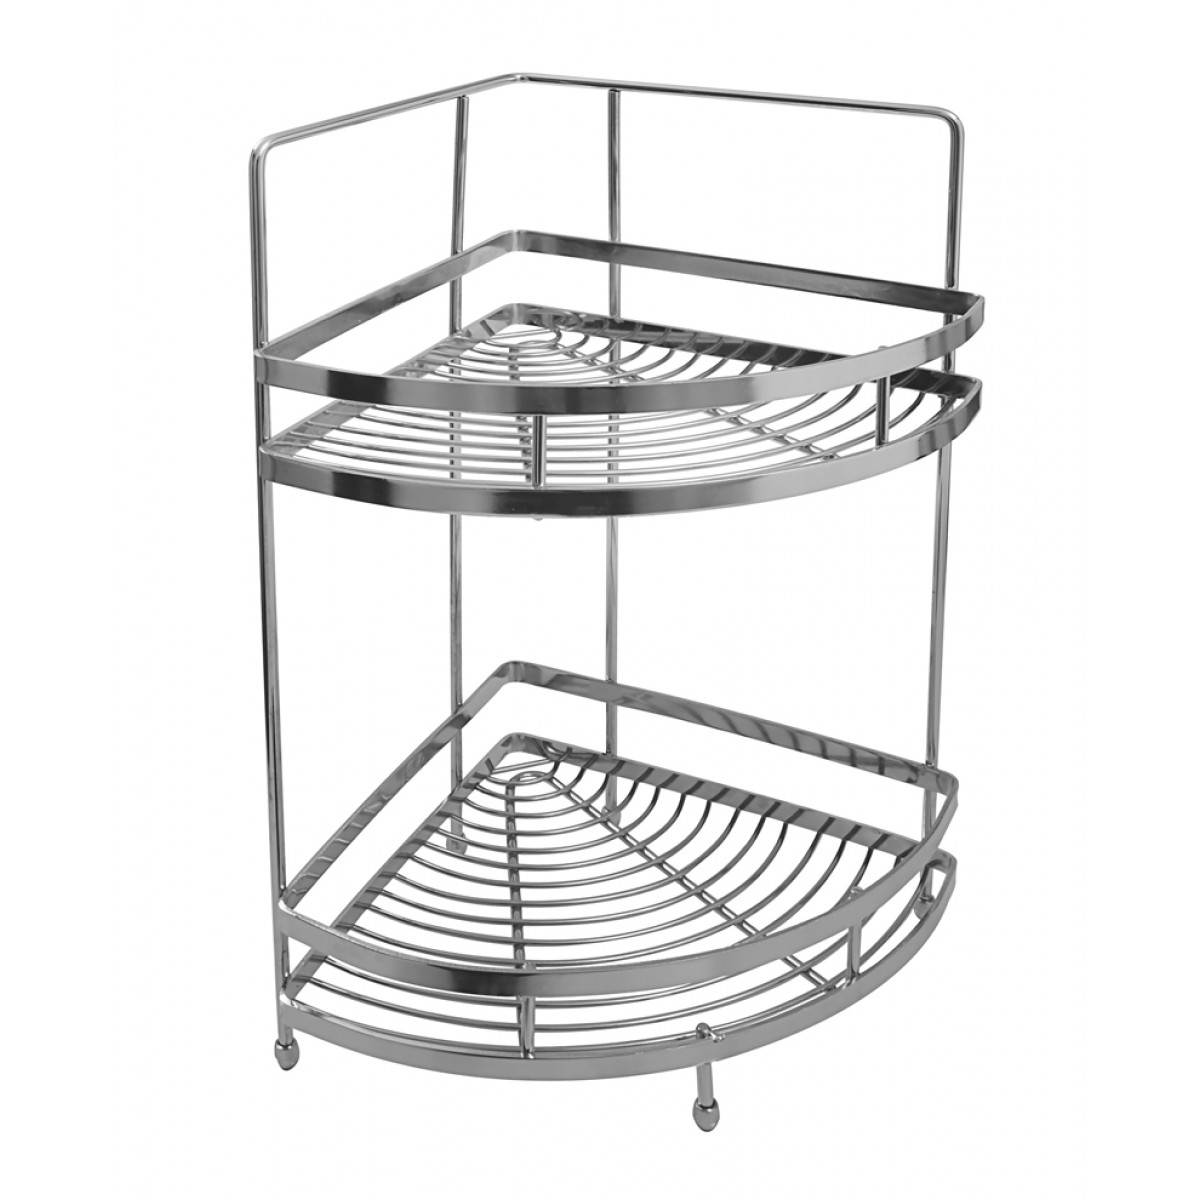 Merveilleux Klaxon Stainless Steel Double Shelf Basket (Silver)